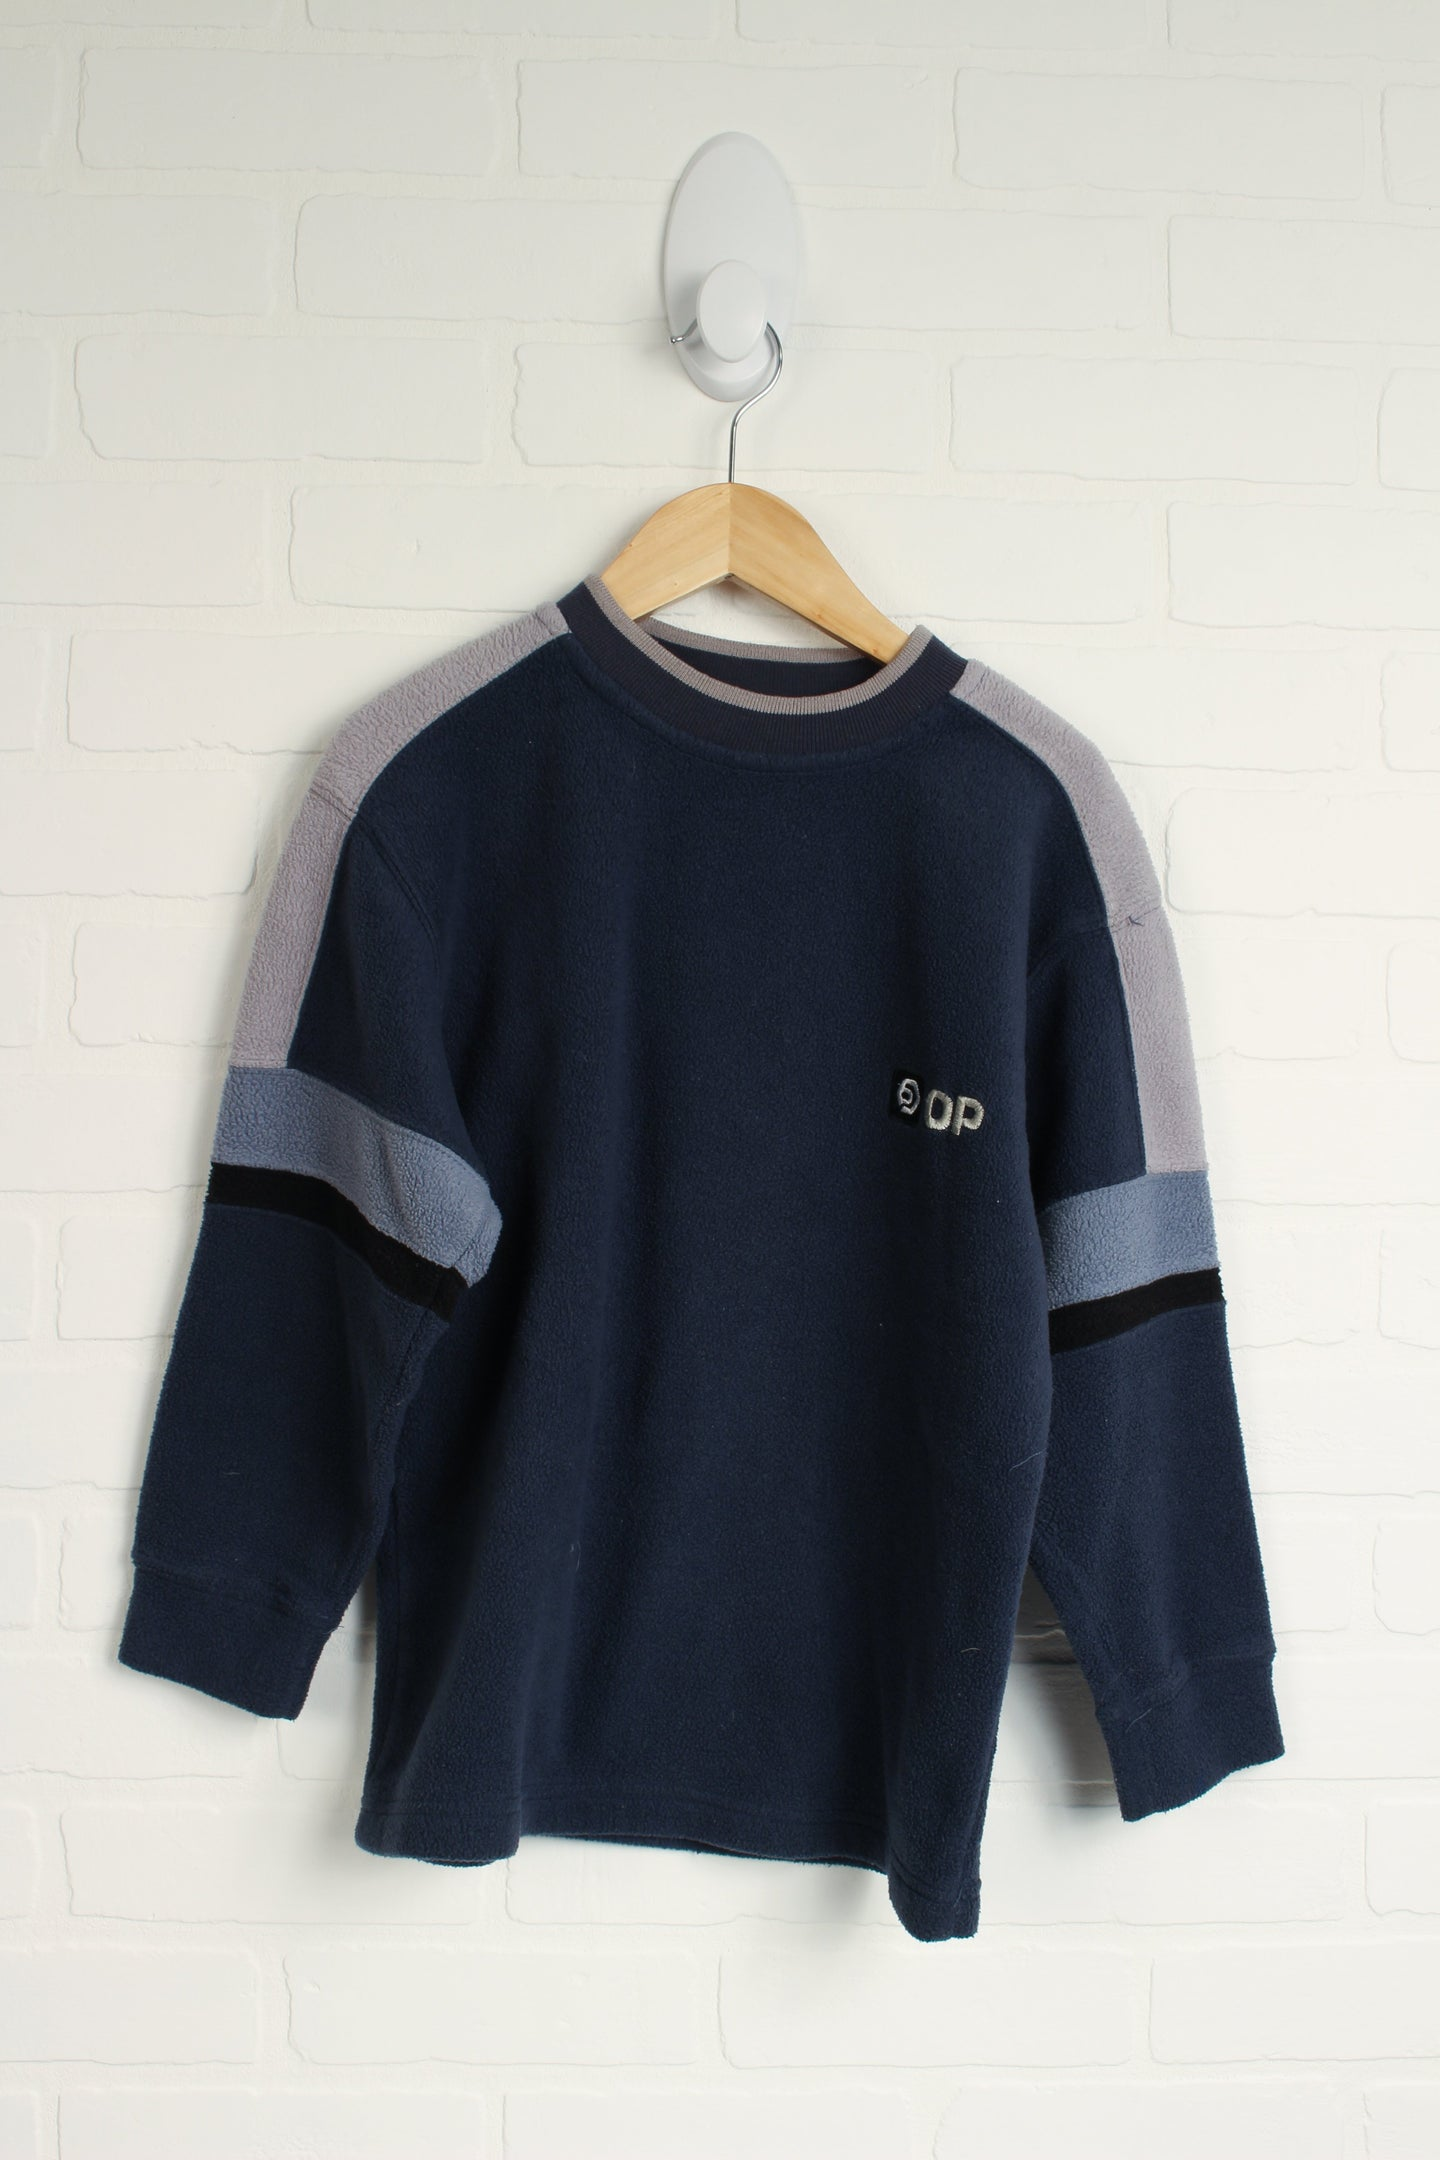 Navy + Grey Fleece Sweatshirt (Size S/7-8)